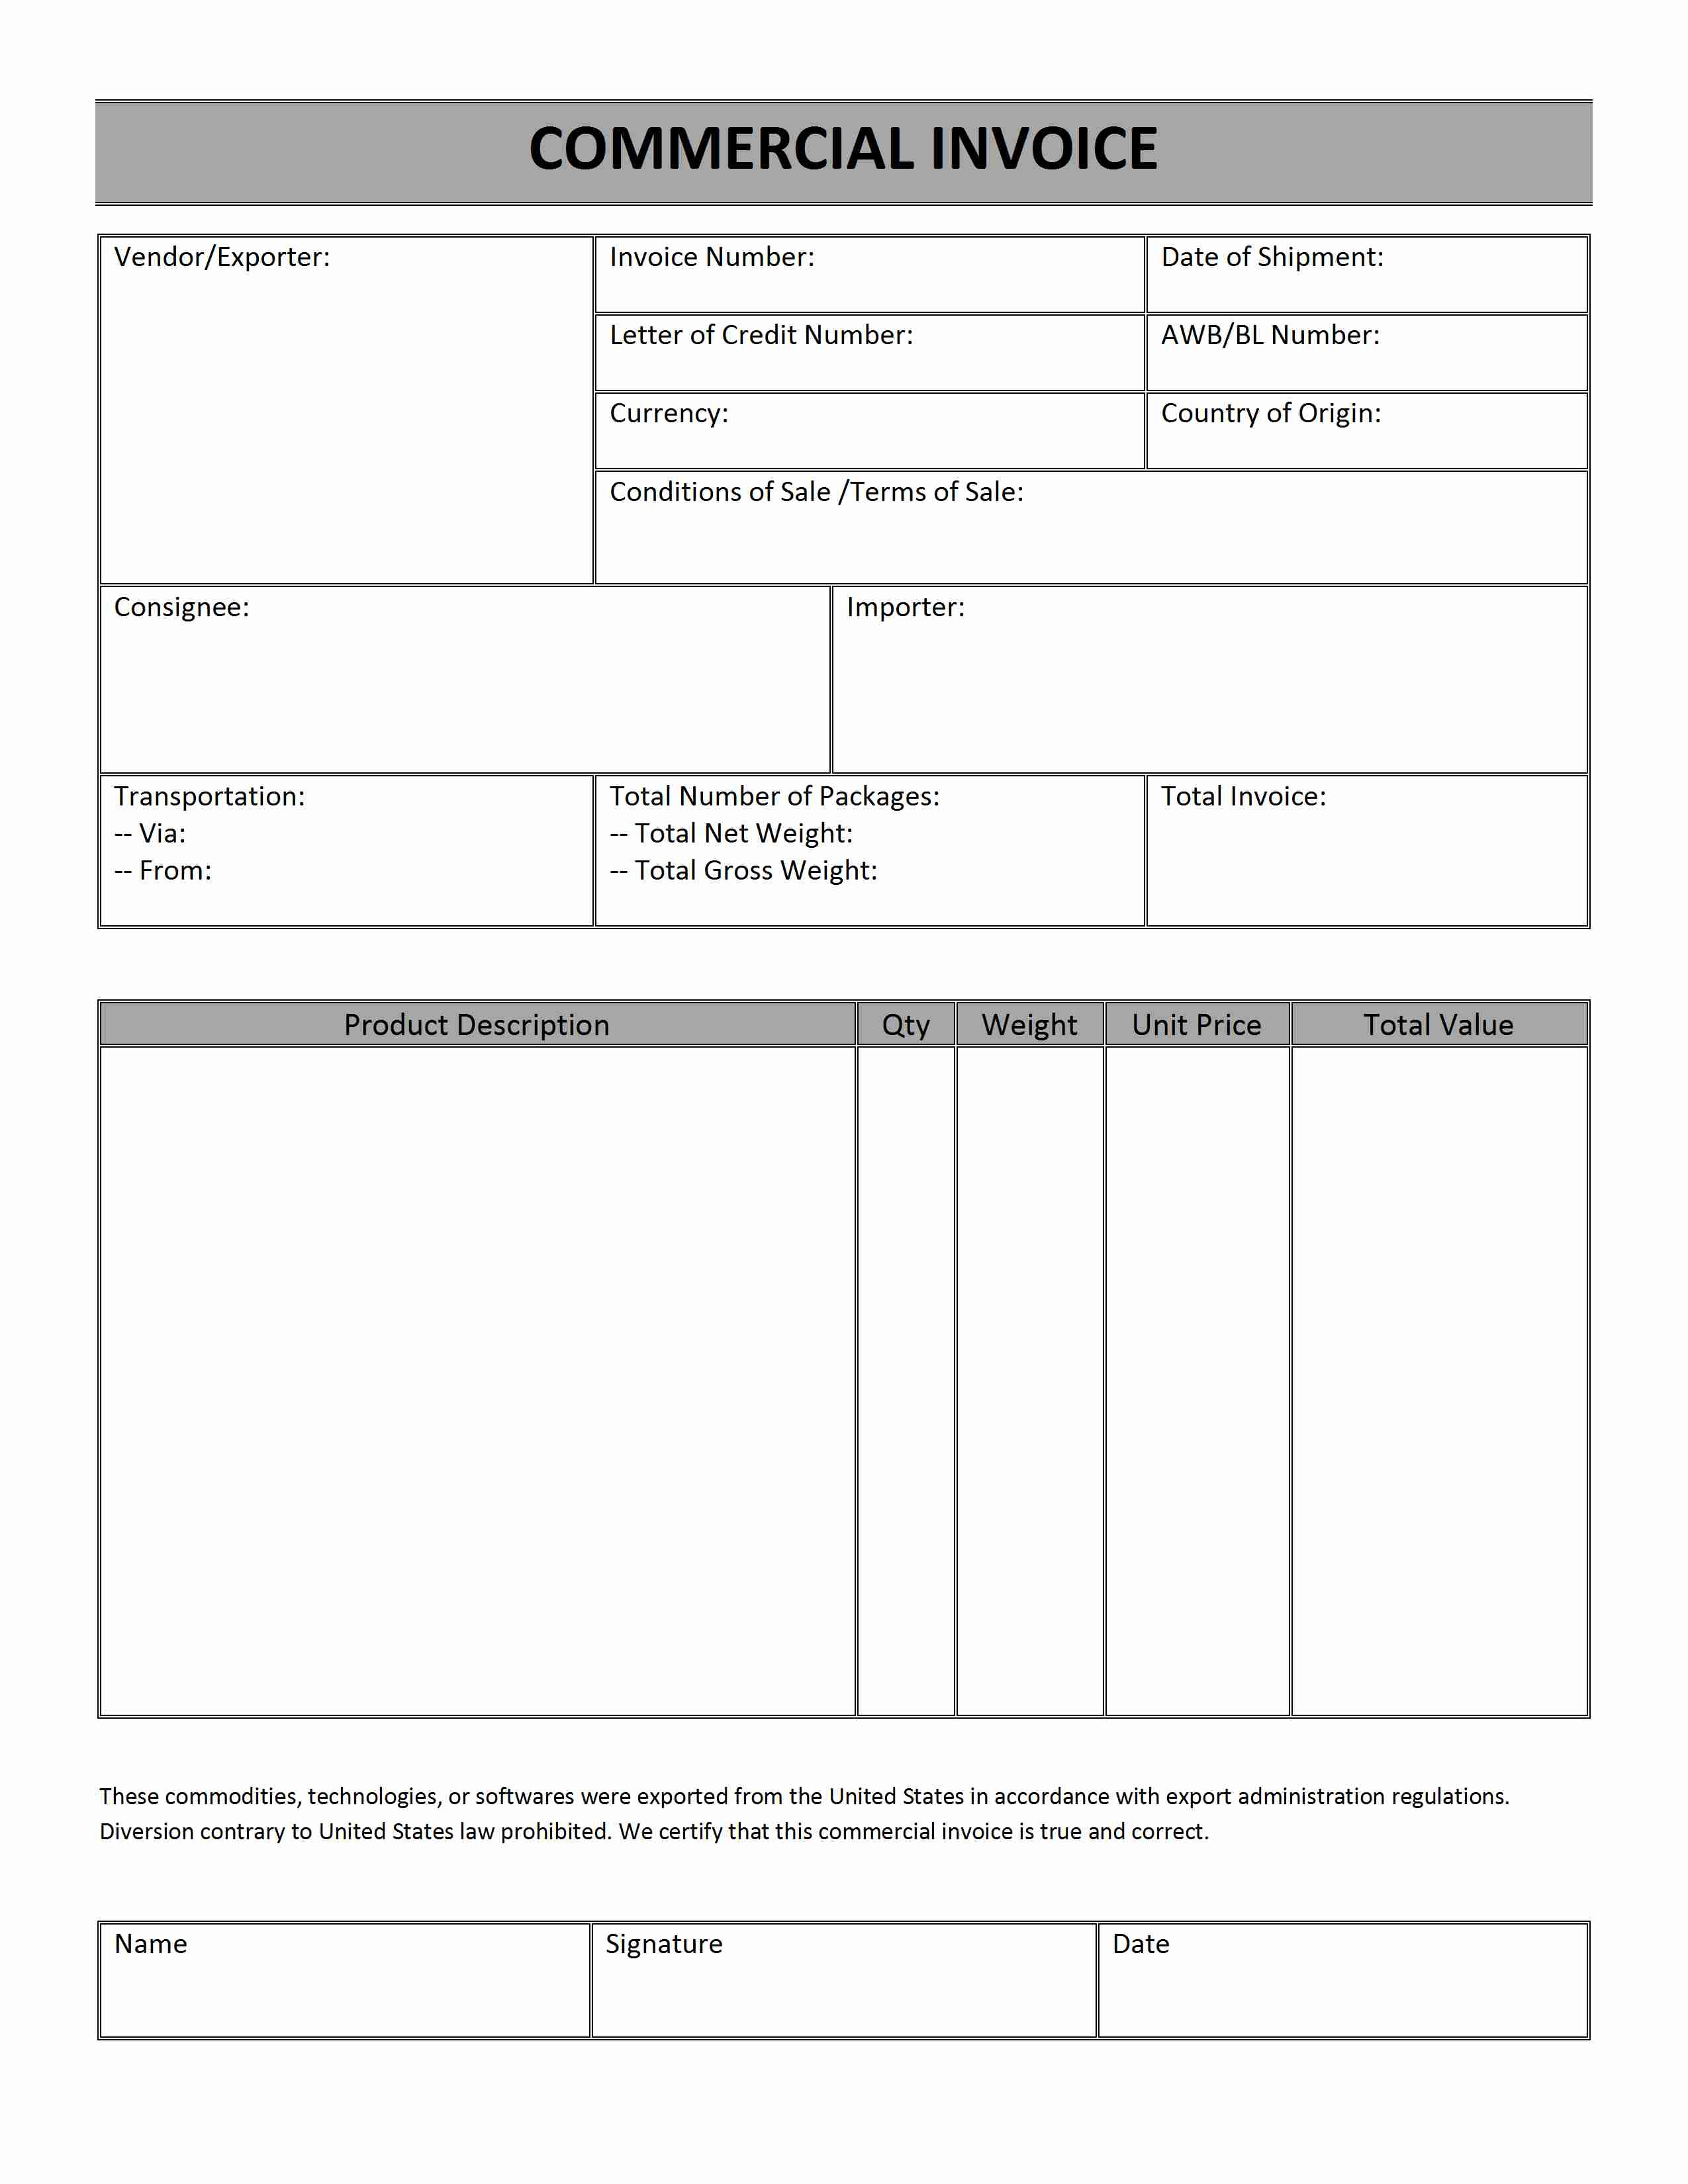 Maidofhonortoastus  Personable Printable Sales Invoice Simple Invoice Form Free Invoice  With Outstanding Printable Receipt Free  Free Printable Raffle Tickets  Receipt   Printable With Archaic Invoice Statement Template Also Sample Contractor Invoice In Addition Sliq Invoicing And Factoring Invoice As Well As Electronic Invoice Presentment And Payment Additionally Zoho Invoice Pricing From Happytomco With Maidofhonortoastus  Outstanding Printable Sales Invoice Simple Invoice Form Free Invoice  With Archaic Printable Receipt Free  Free Printable Raffle Tickets  Receipt   Printable And Personable Invoice Statement Template Also Sample Contractor Invoice In Addition Sliq Invoicing From Happytomco